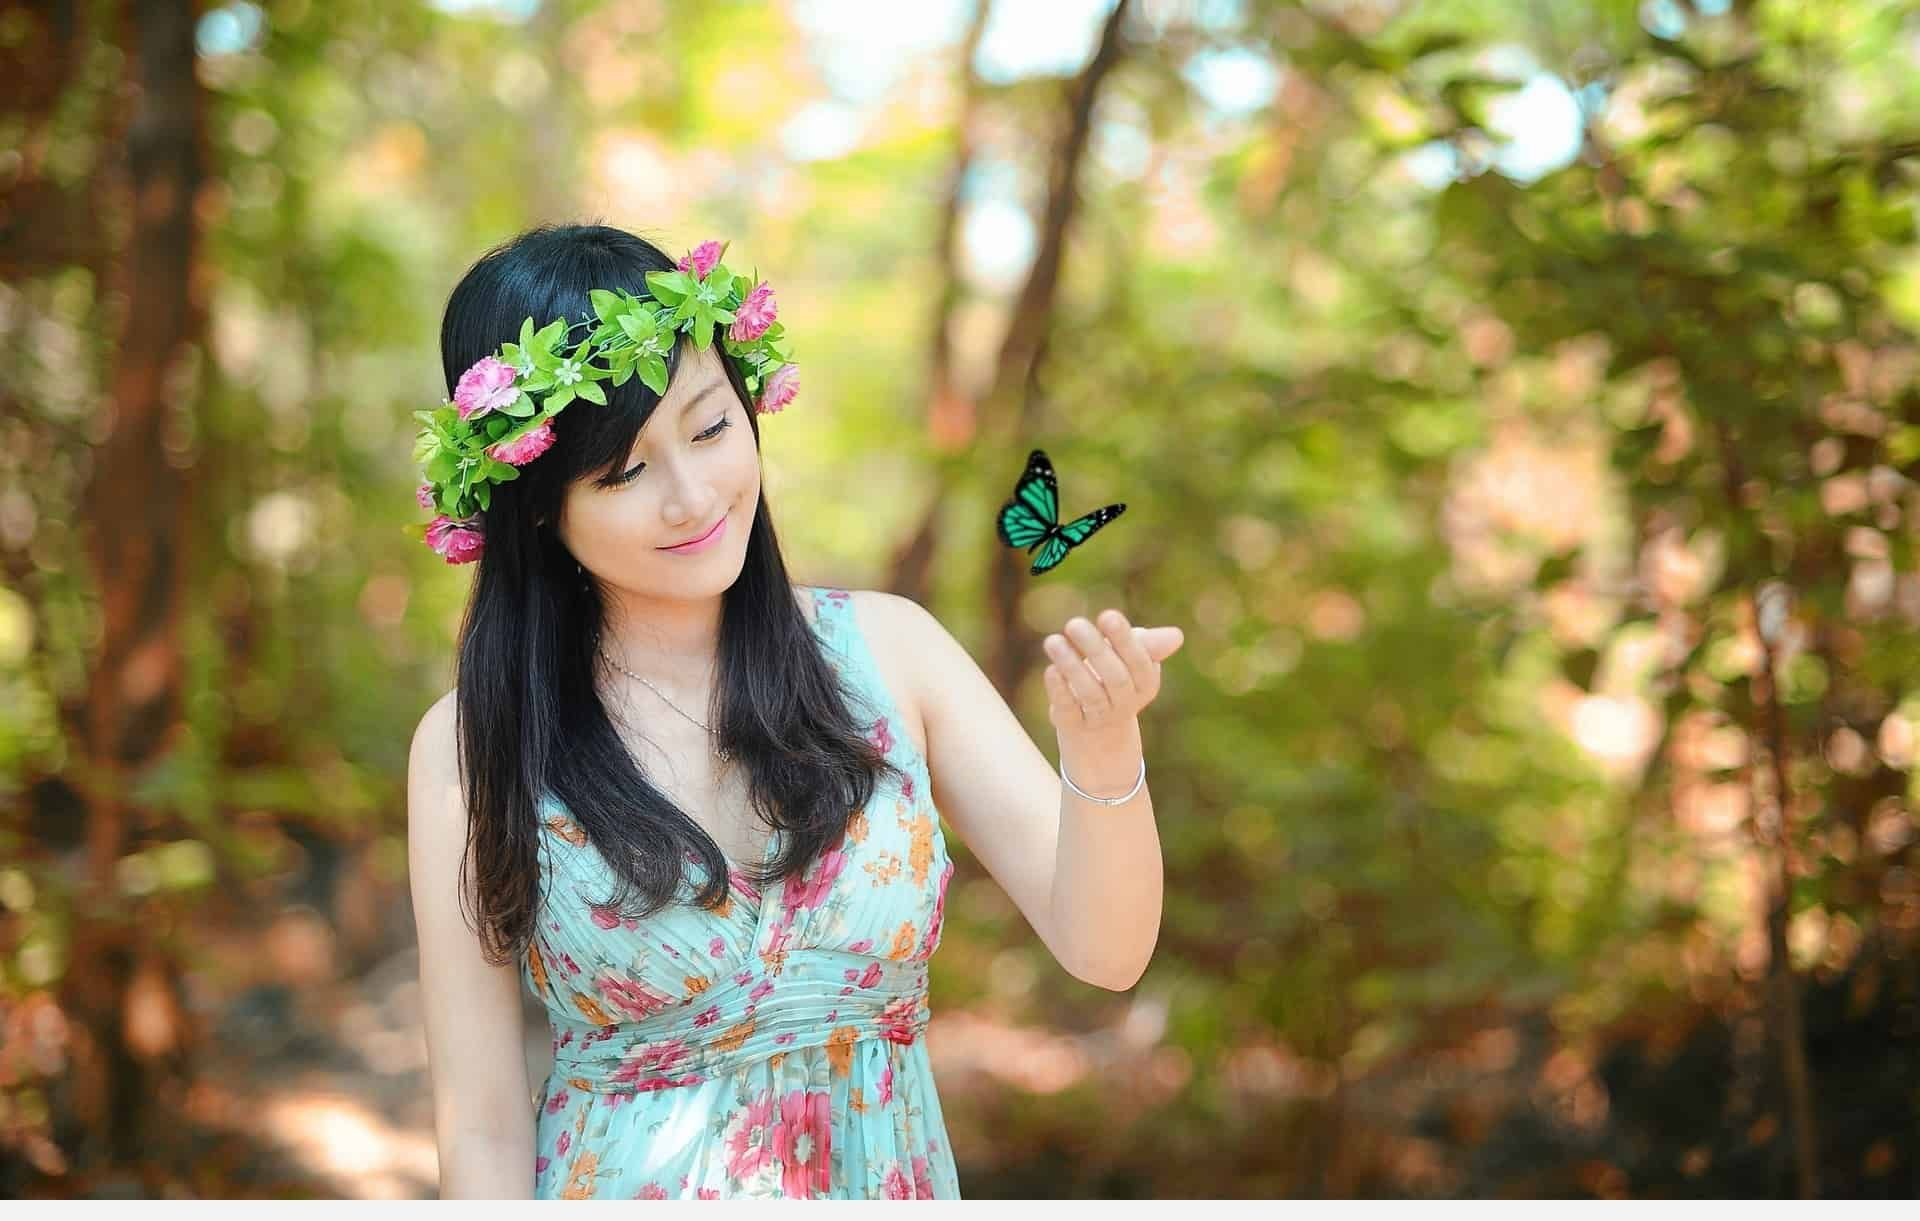 Butterfly Girl Wallpapers - Butterfly Image With Girl , HD Wallpaper & Backgrounds